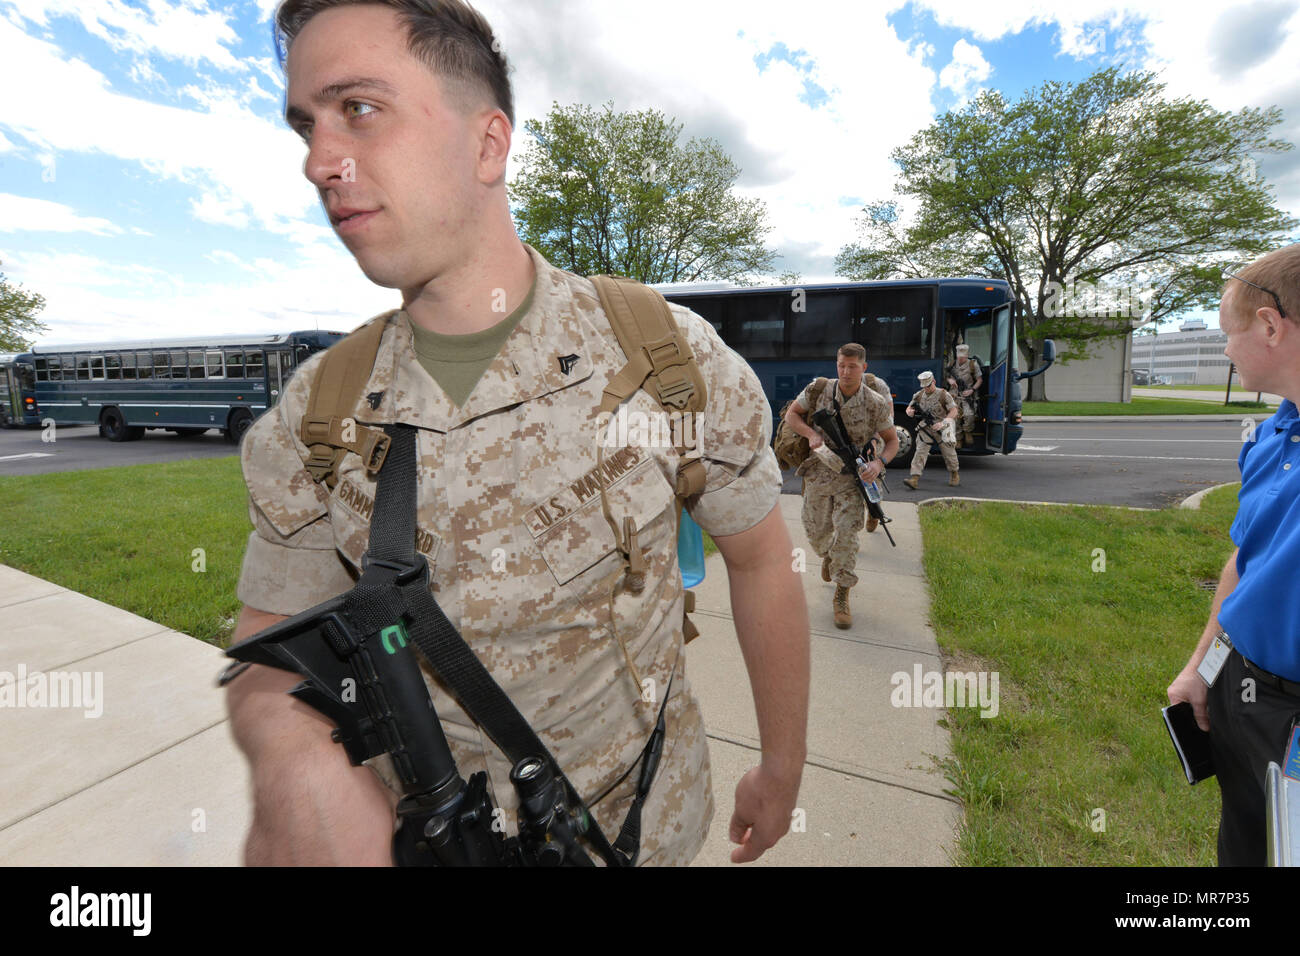 Marine corporal Michael Gammelgaard along with other members of the